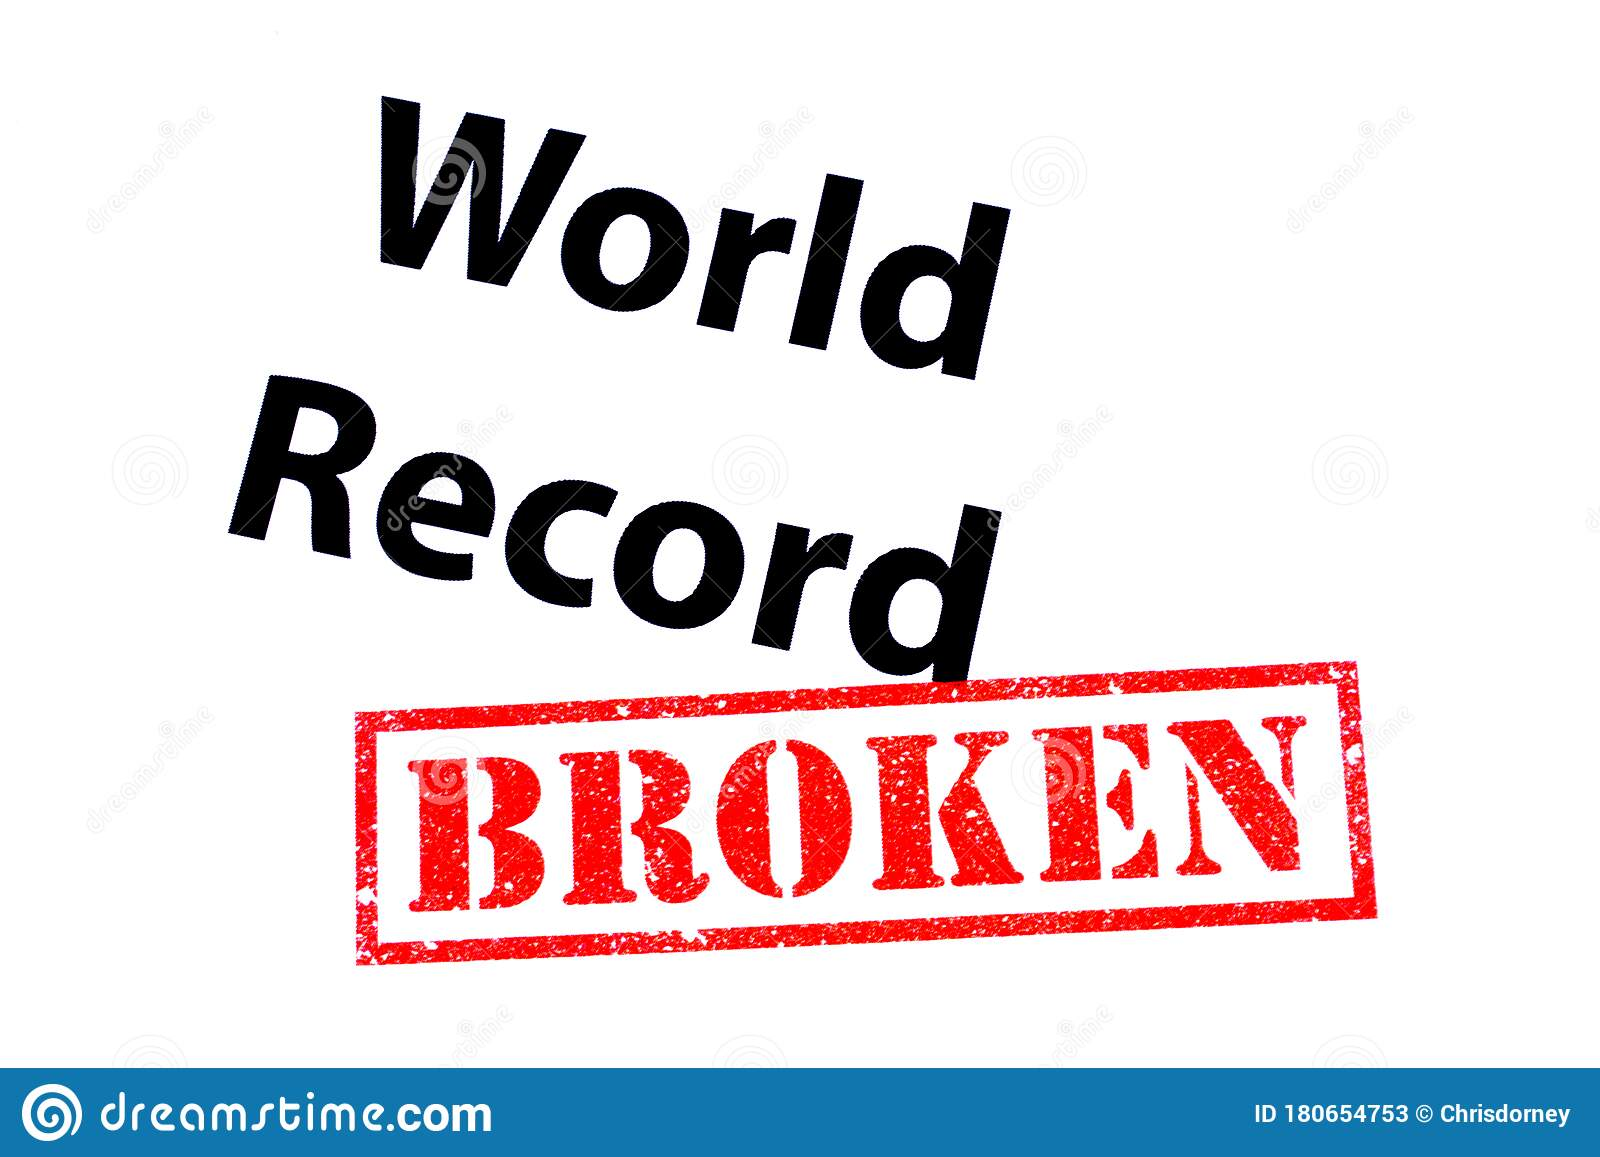 Guinness World Record Logo Png Image - World Record Guinness , Free  Transparent Clipart - ClipartKey